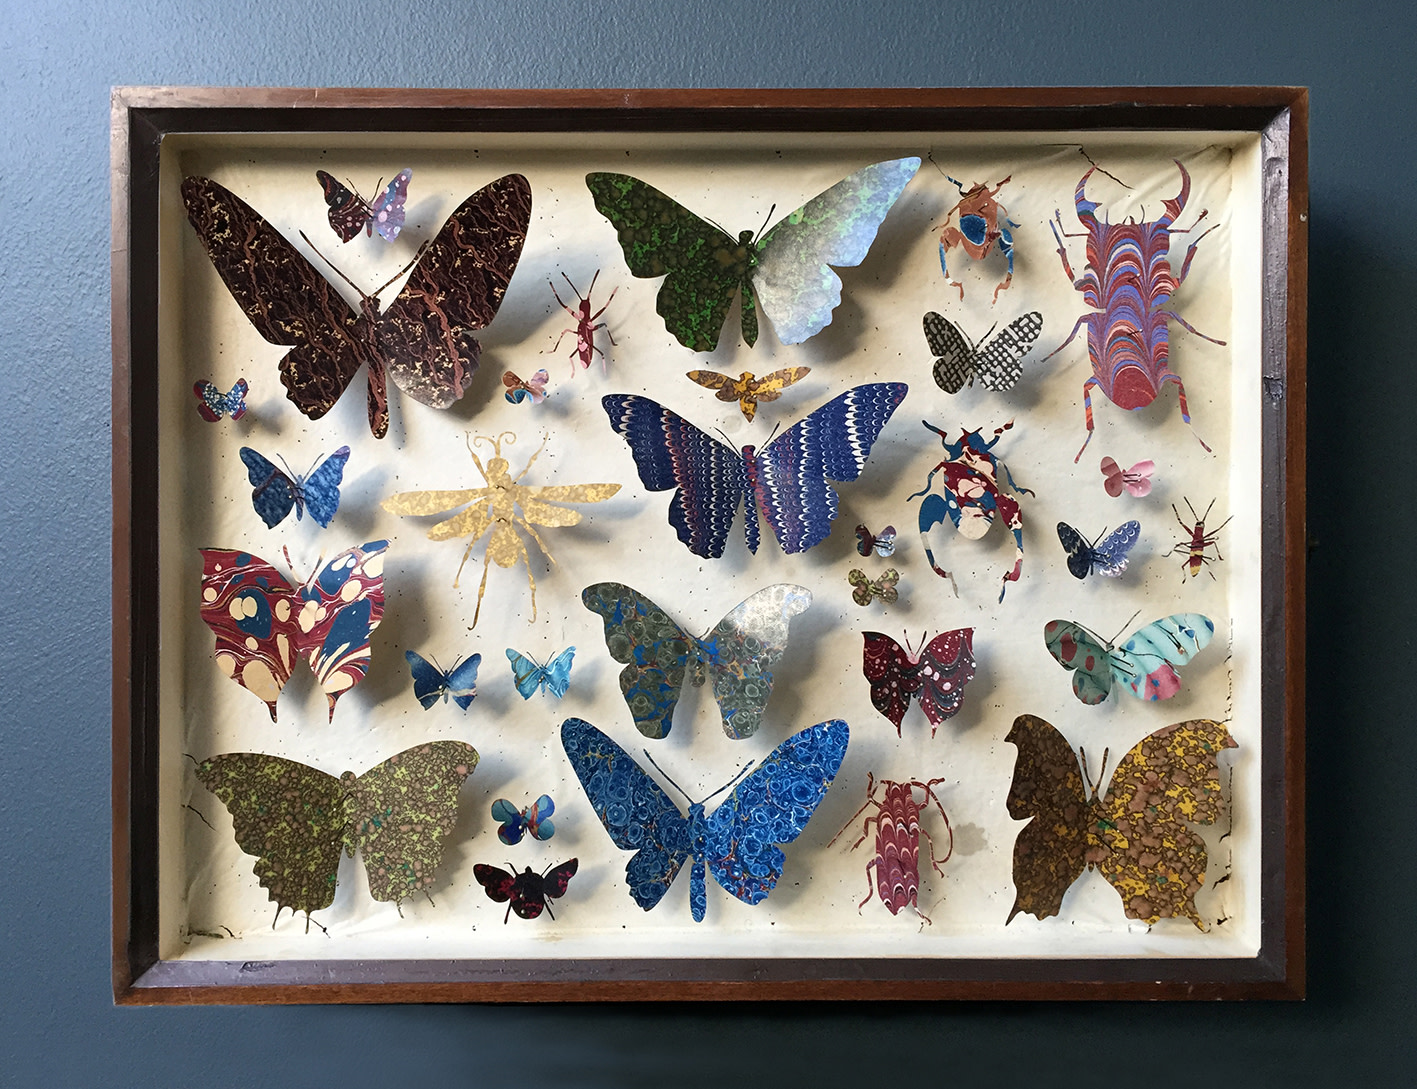 <span class=&#34;link fancybox-details-link&#34;><a href=&#34;/artists/142-helen-ward/works/6237-helen-ward-entomology-case-11-2019/&#34;>View Detail Page</a></span><div class=&#34;artist&#34;><strong>Helen Ward</strong></div> <div class=&#34;title&#34;><em>Entomology Case 11</em>, 2019</div> <div class=&#34;medium&#34;>Victorian entomology drawer, hand-marbled papers, enamel pins</div> <div class=&#34;dimensions&#34;>29 x 39 cm</div><div class=&#34;price&#34;>£595.00</div><div class=&#34;copyright_line&#34;>Own Art: £ 59.50 x 10 Monthly 0% APR Representative Payments</div>